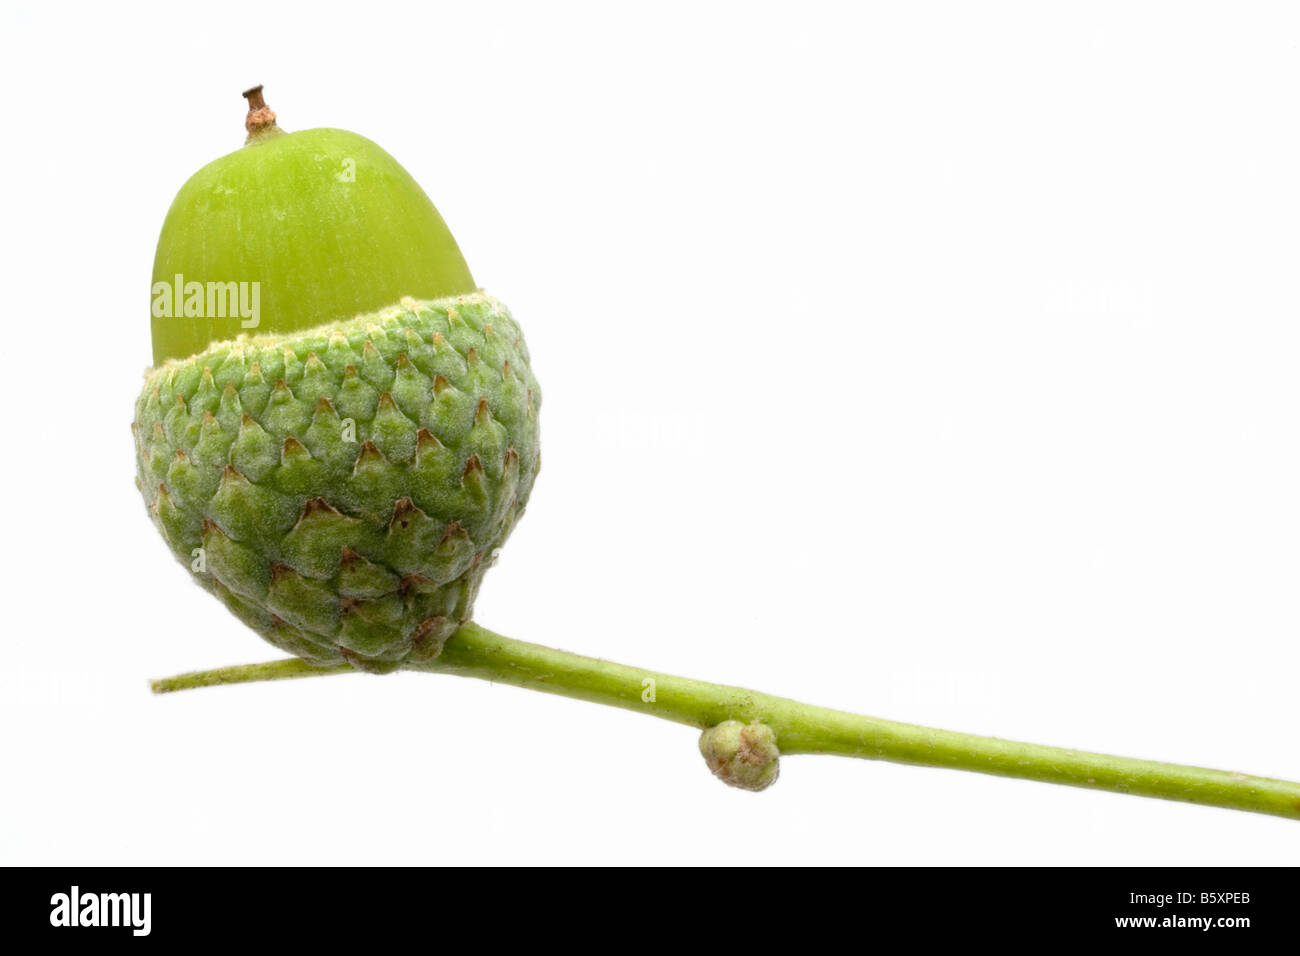 A green stem holds an 'acorn cup' in which there is a green acorn, (seed of an oak tree).  White background. - Stock Image